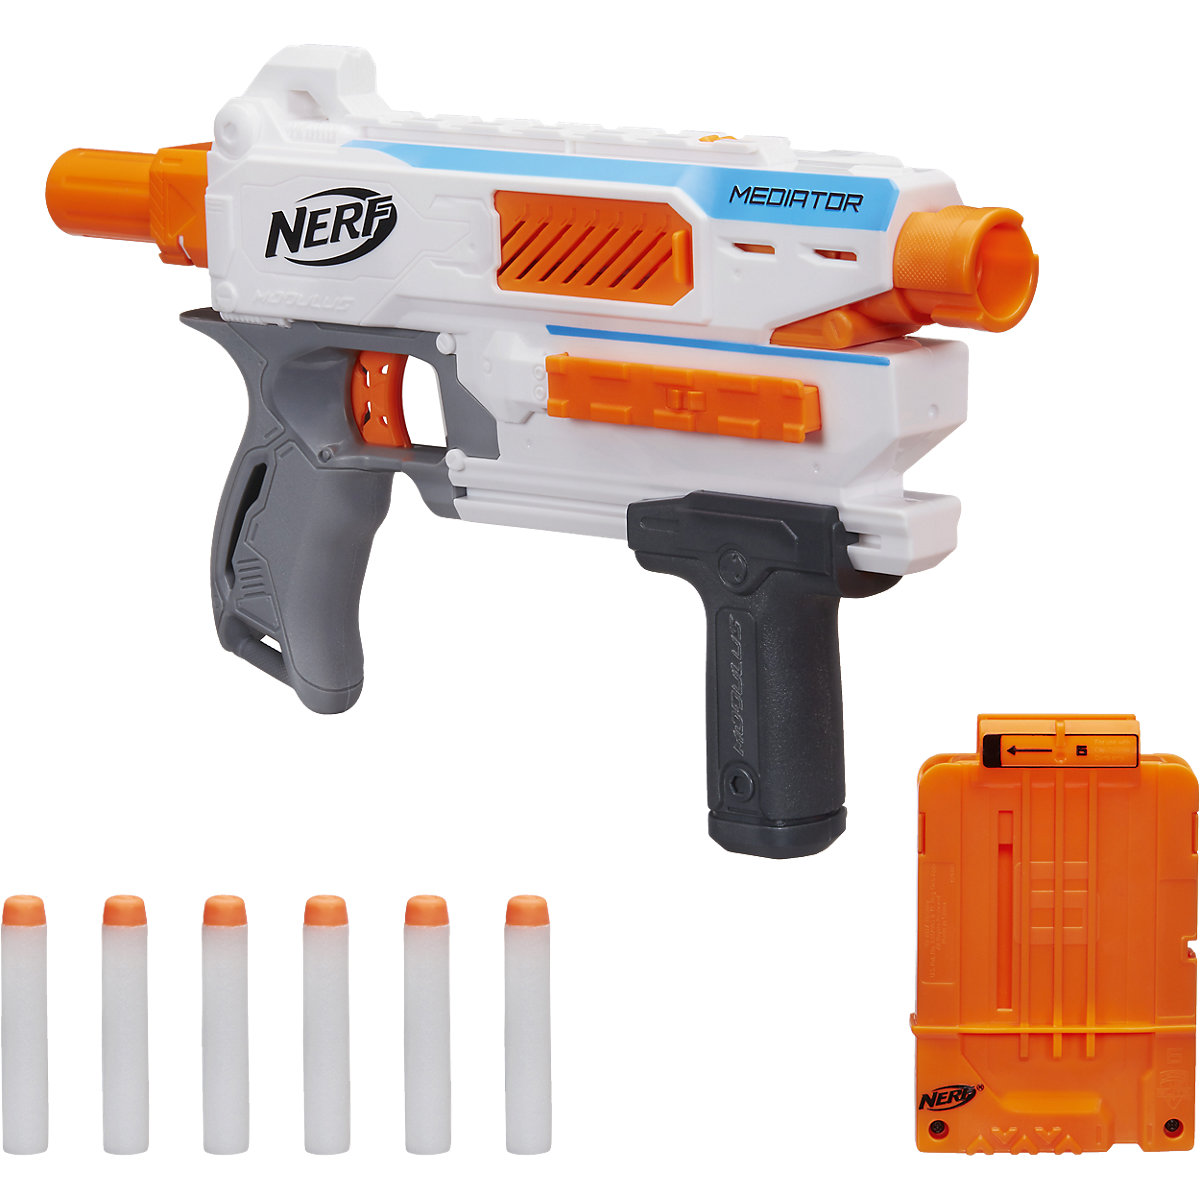 NERF Toy Guns 7196314 gun weapon toys games pneumatic blaster boy orbiz revolver Outdoor Fun Sports tactical x300 pistol gun light 500 lumens high output weapon flashlight fit 20mm picatinny weaver rail